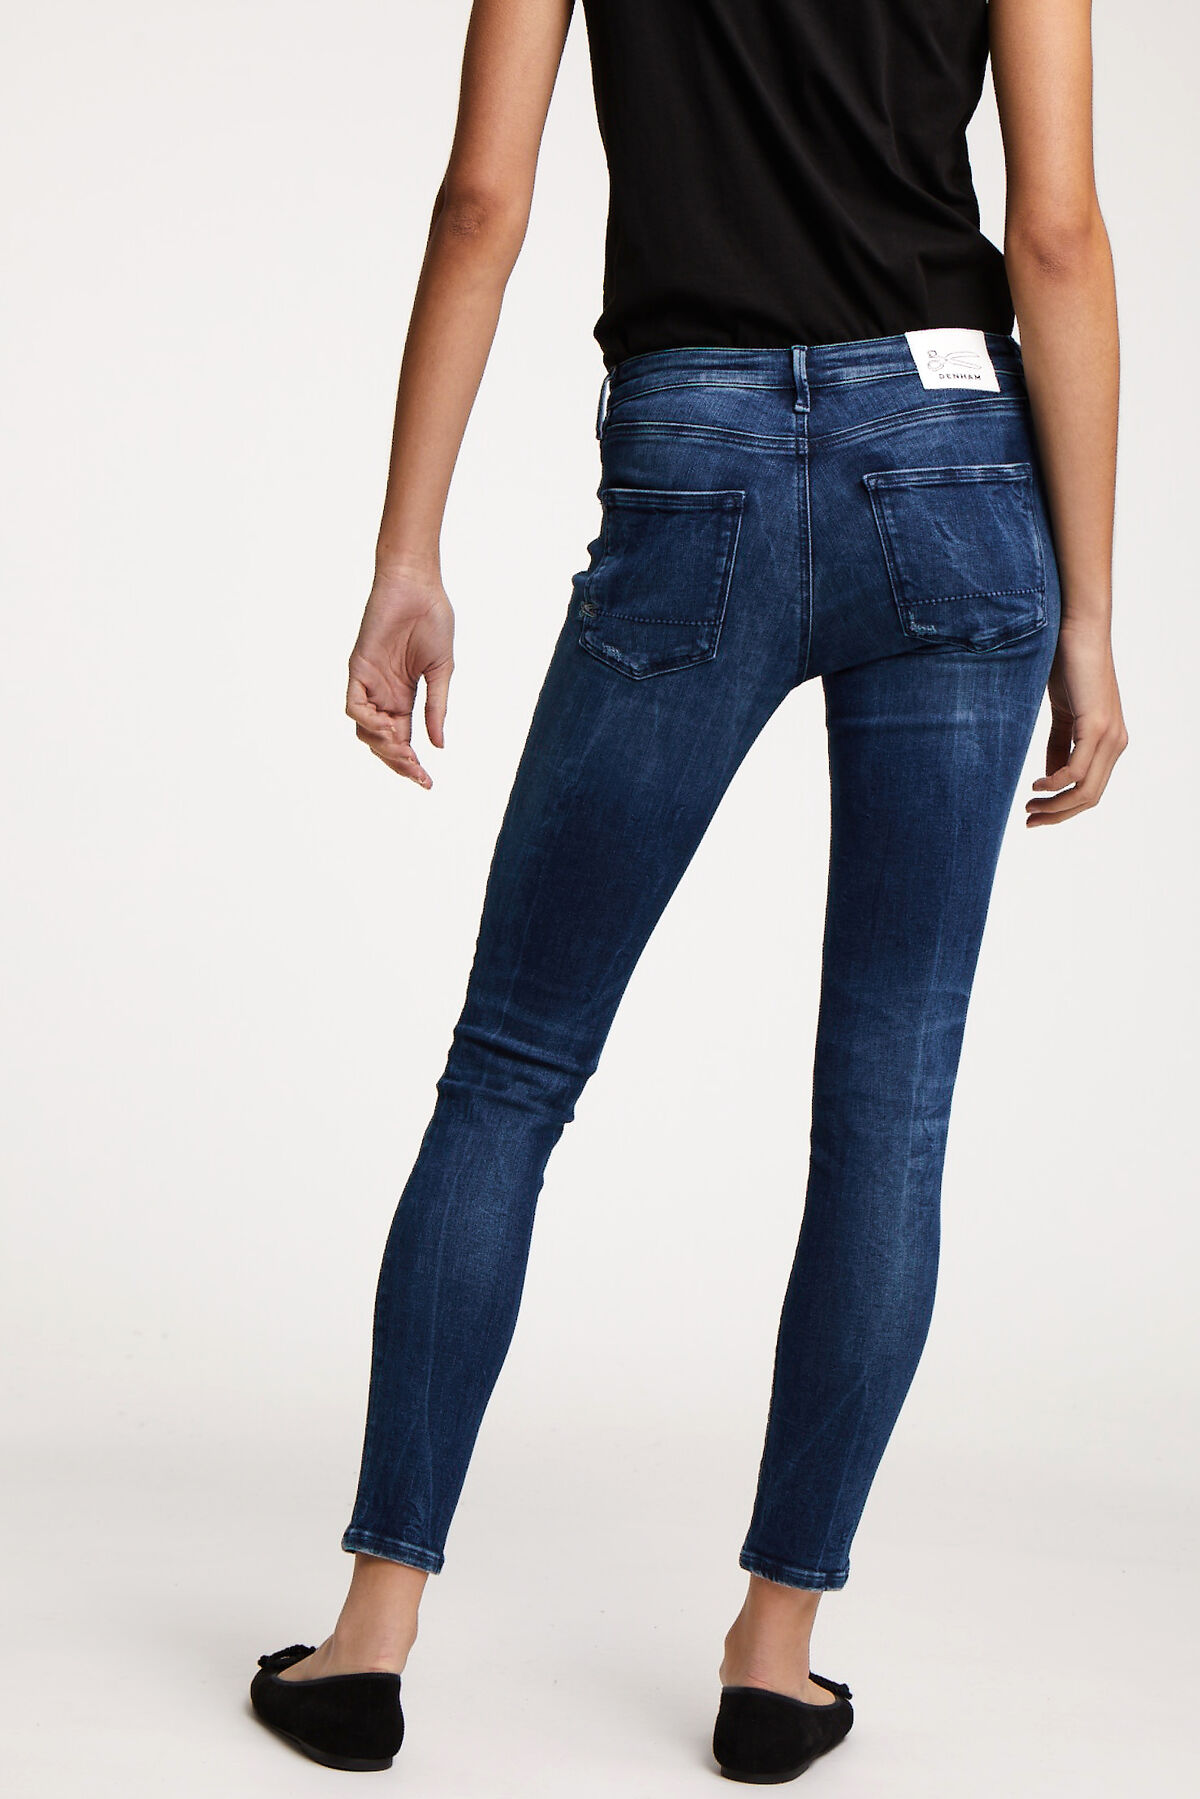 SPRAY Vintage Rip & Repair, Indigo Denim - Mid-rise Tight Fit